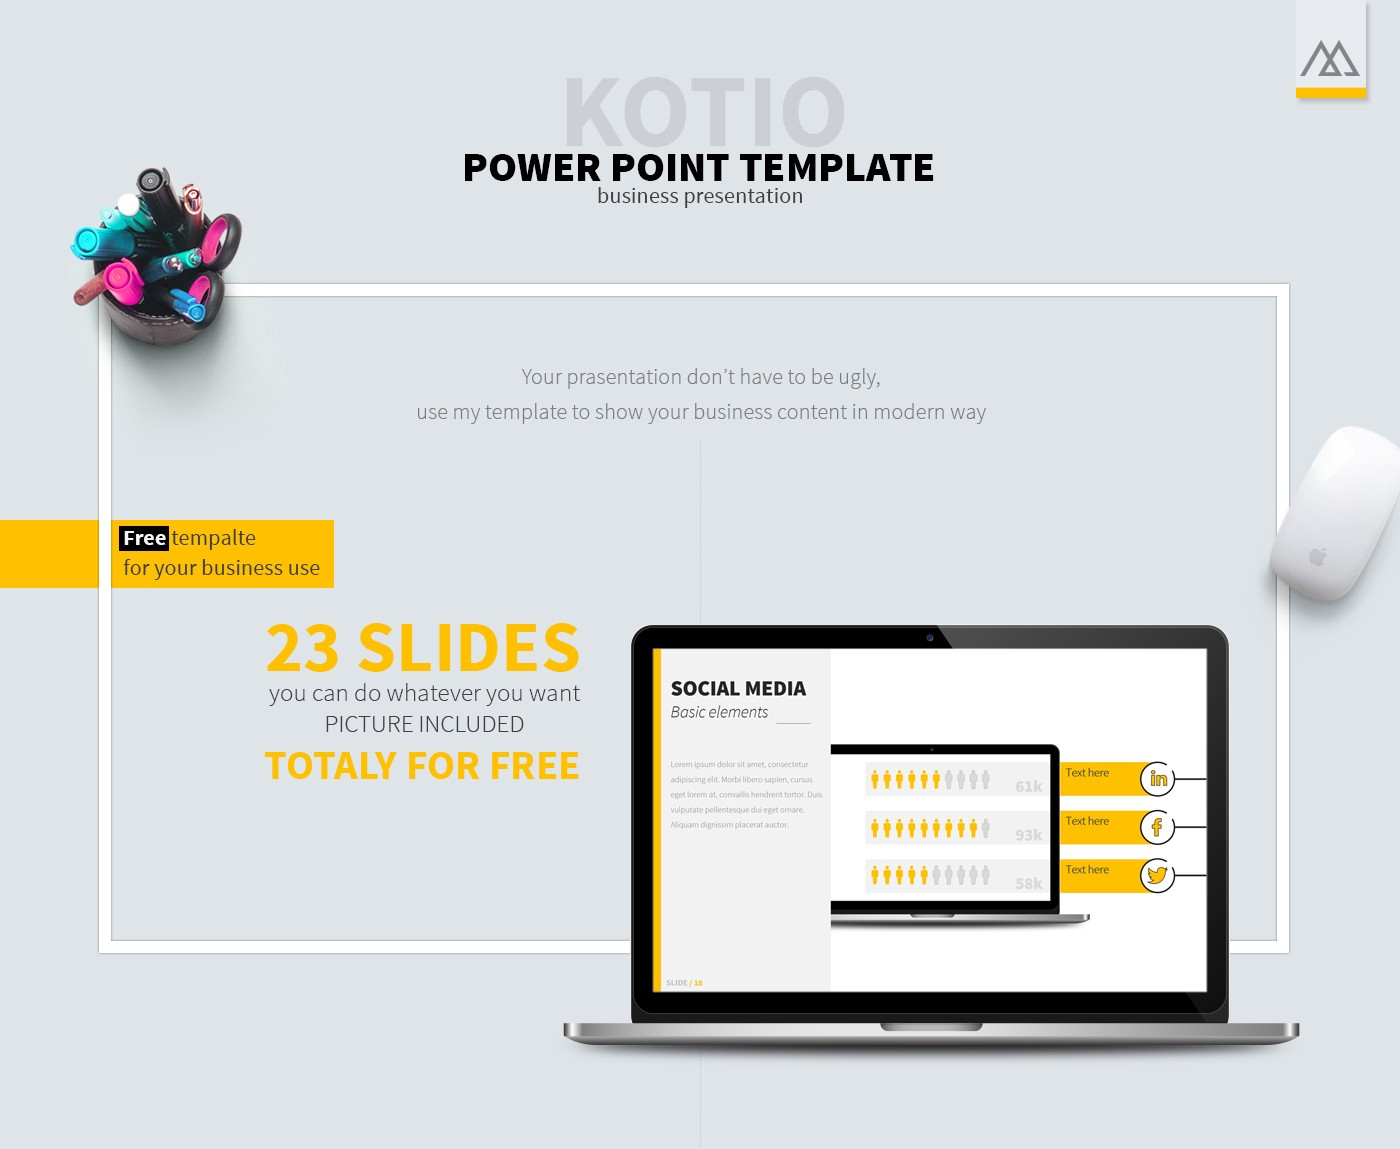 40 free cool powerpoint templates for presentations you can customize every slide to fit your presentation and its ready to use photos are easy to access therefore no time wasted accmission